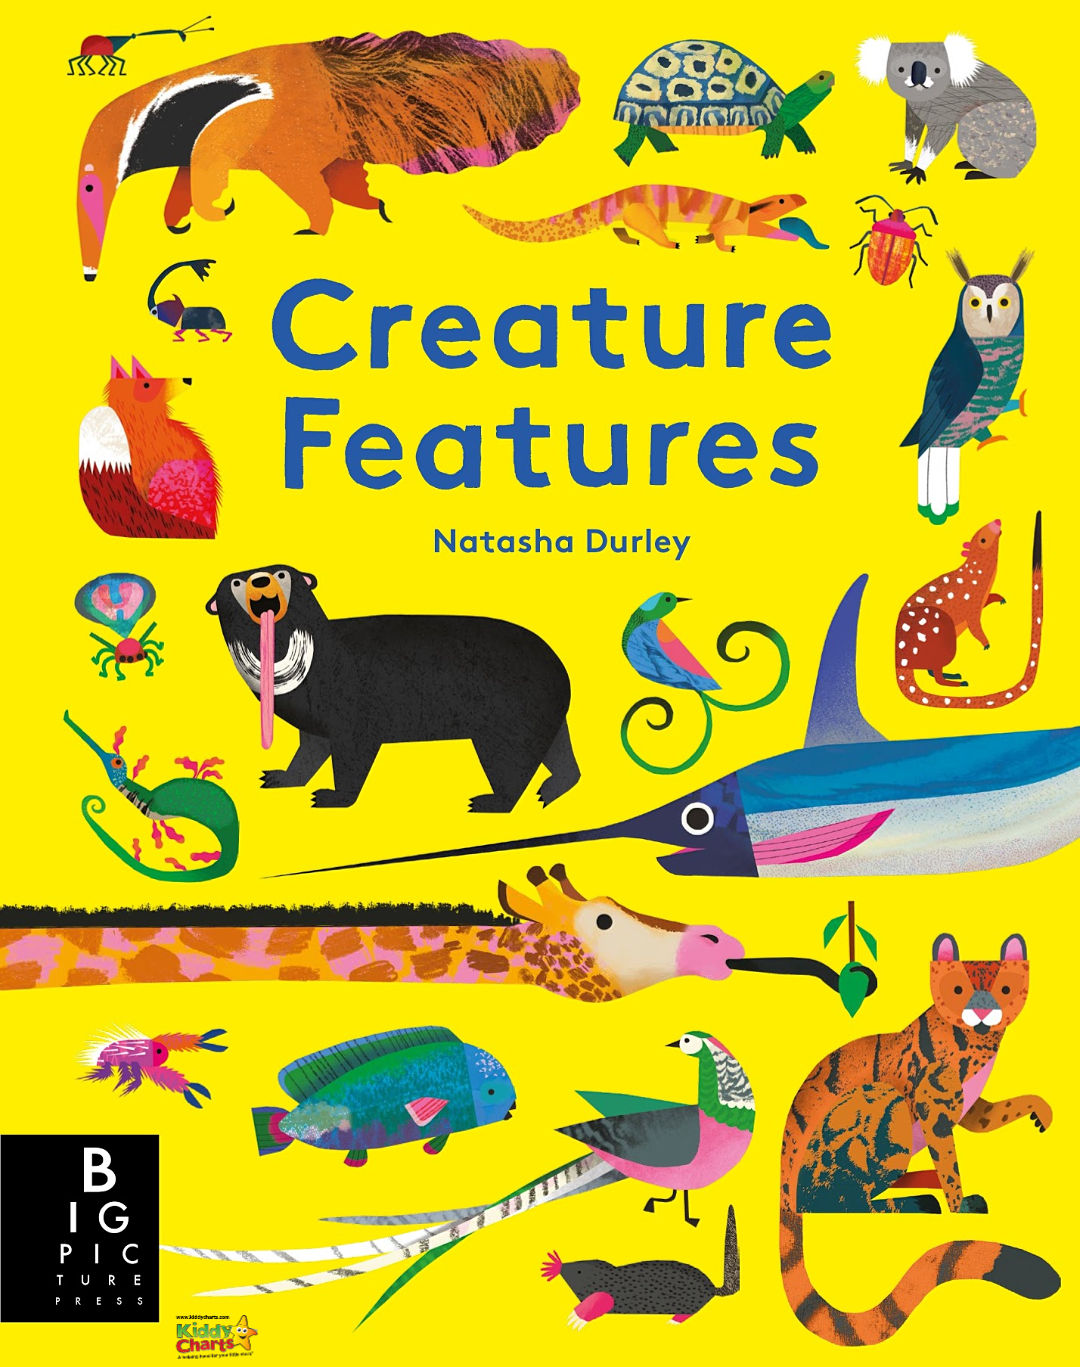 We'e got 12 of the best non fiction books for kids on the site - go on check them out NOW! #books #booksforkids #reading #nonfiction